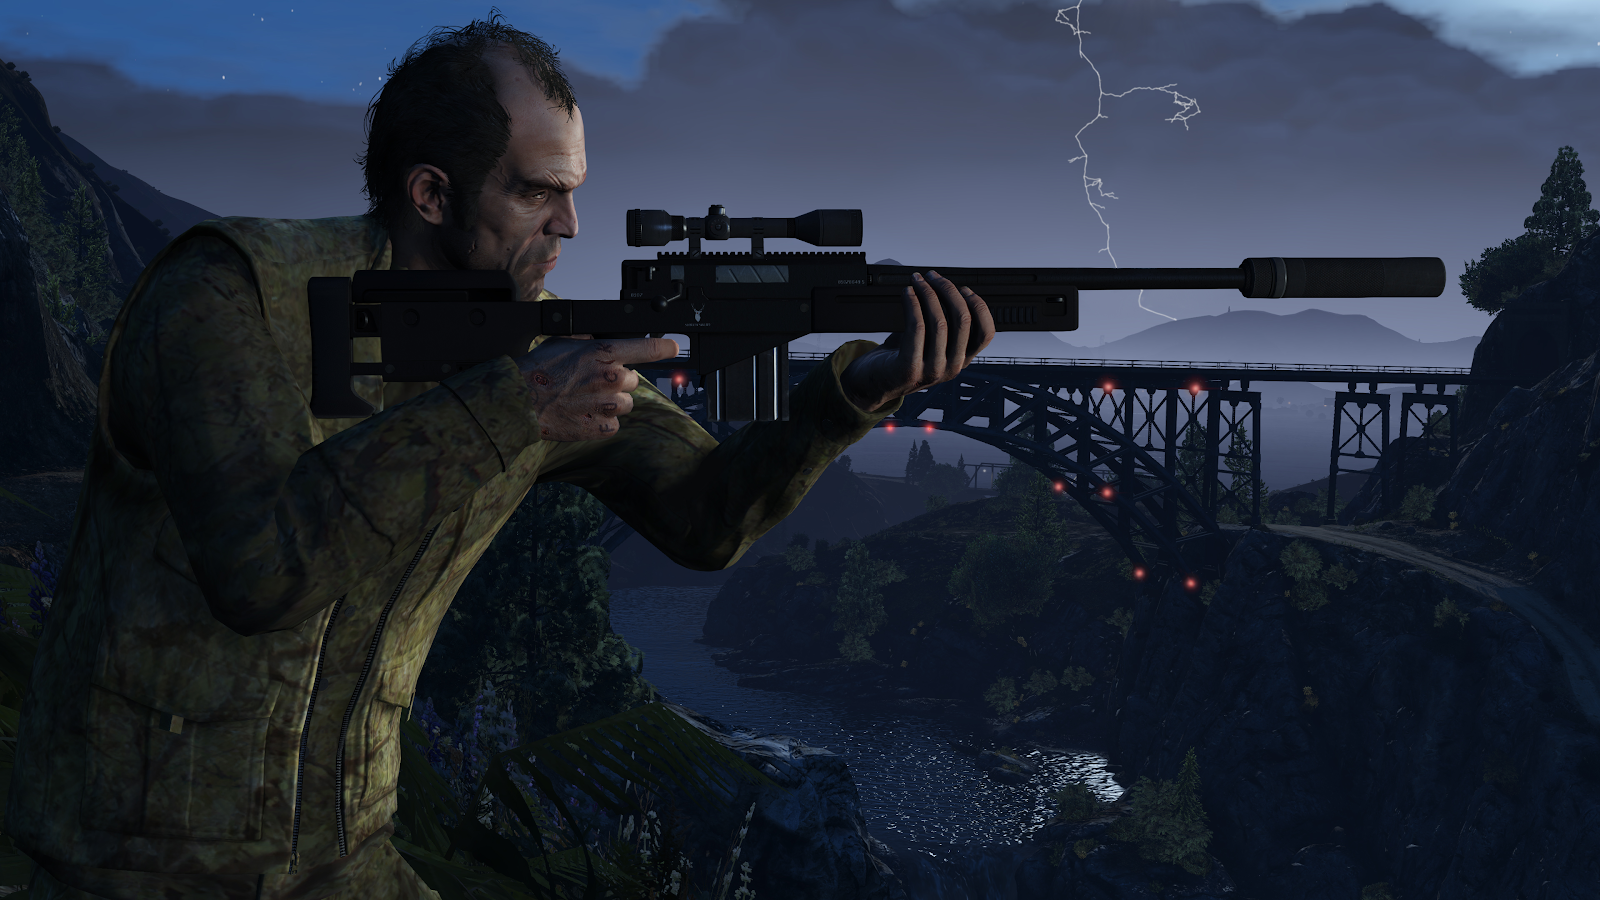 Modders Keep Finding Ways To Make GTA 5's Violence More